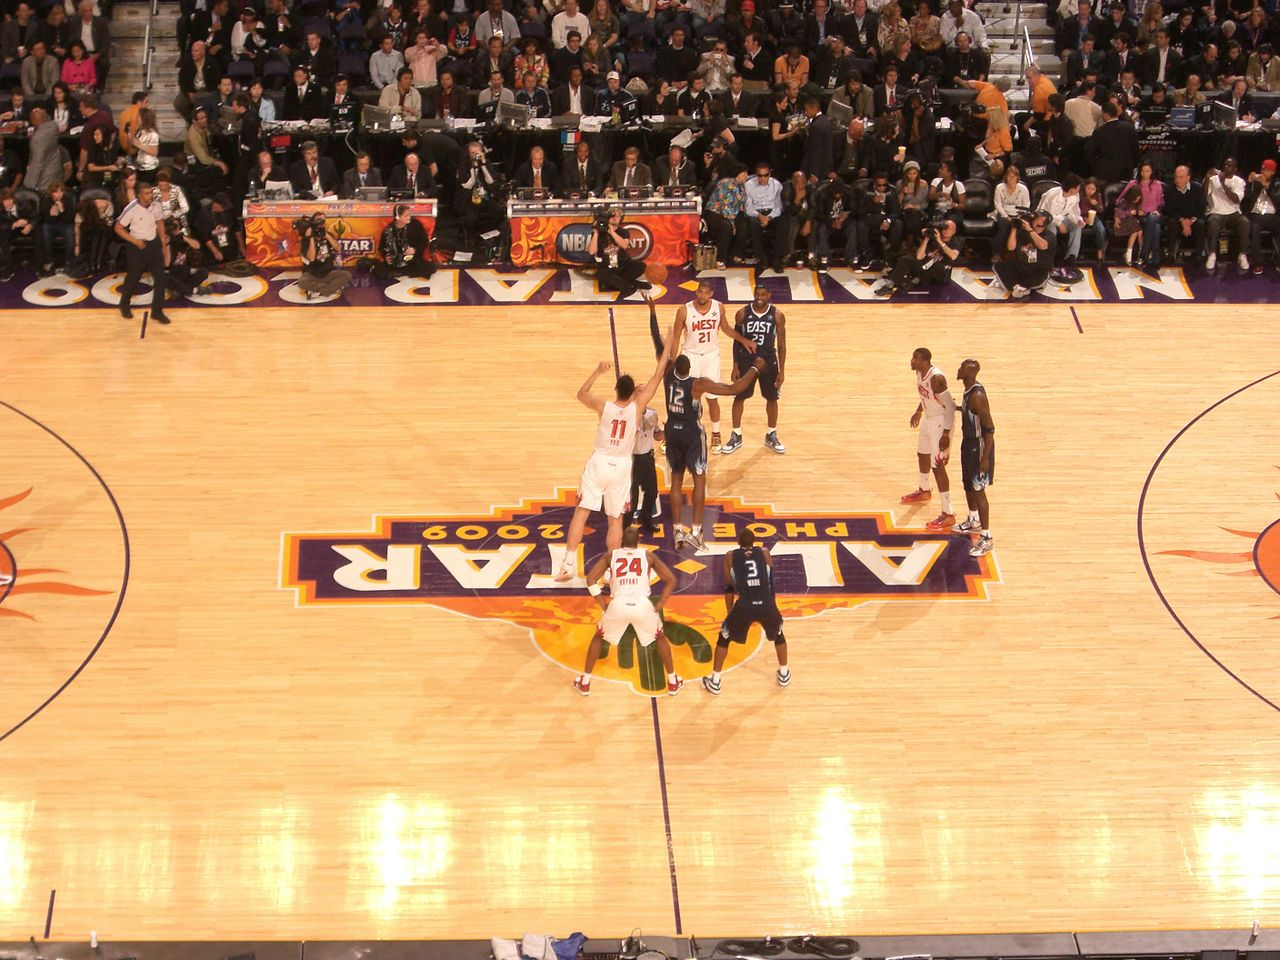 File:Tip Off 2009 NBA All Star Game.jpg